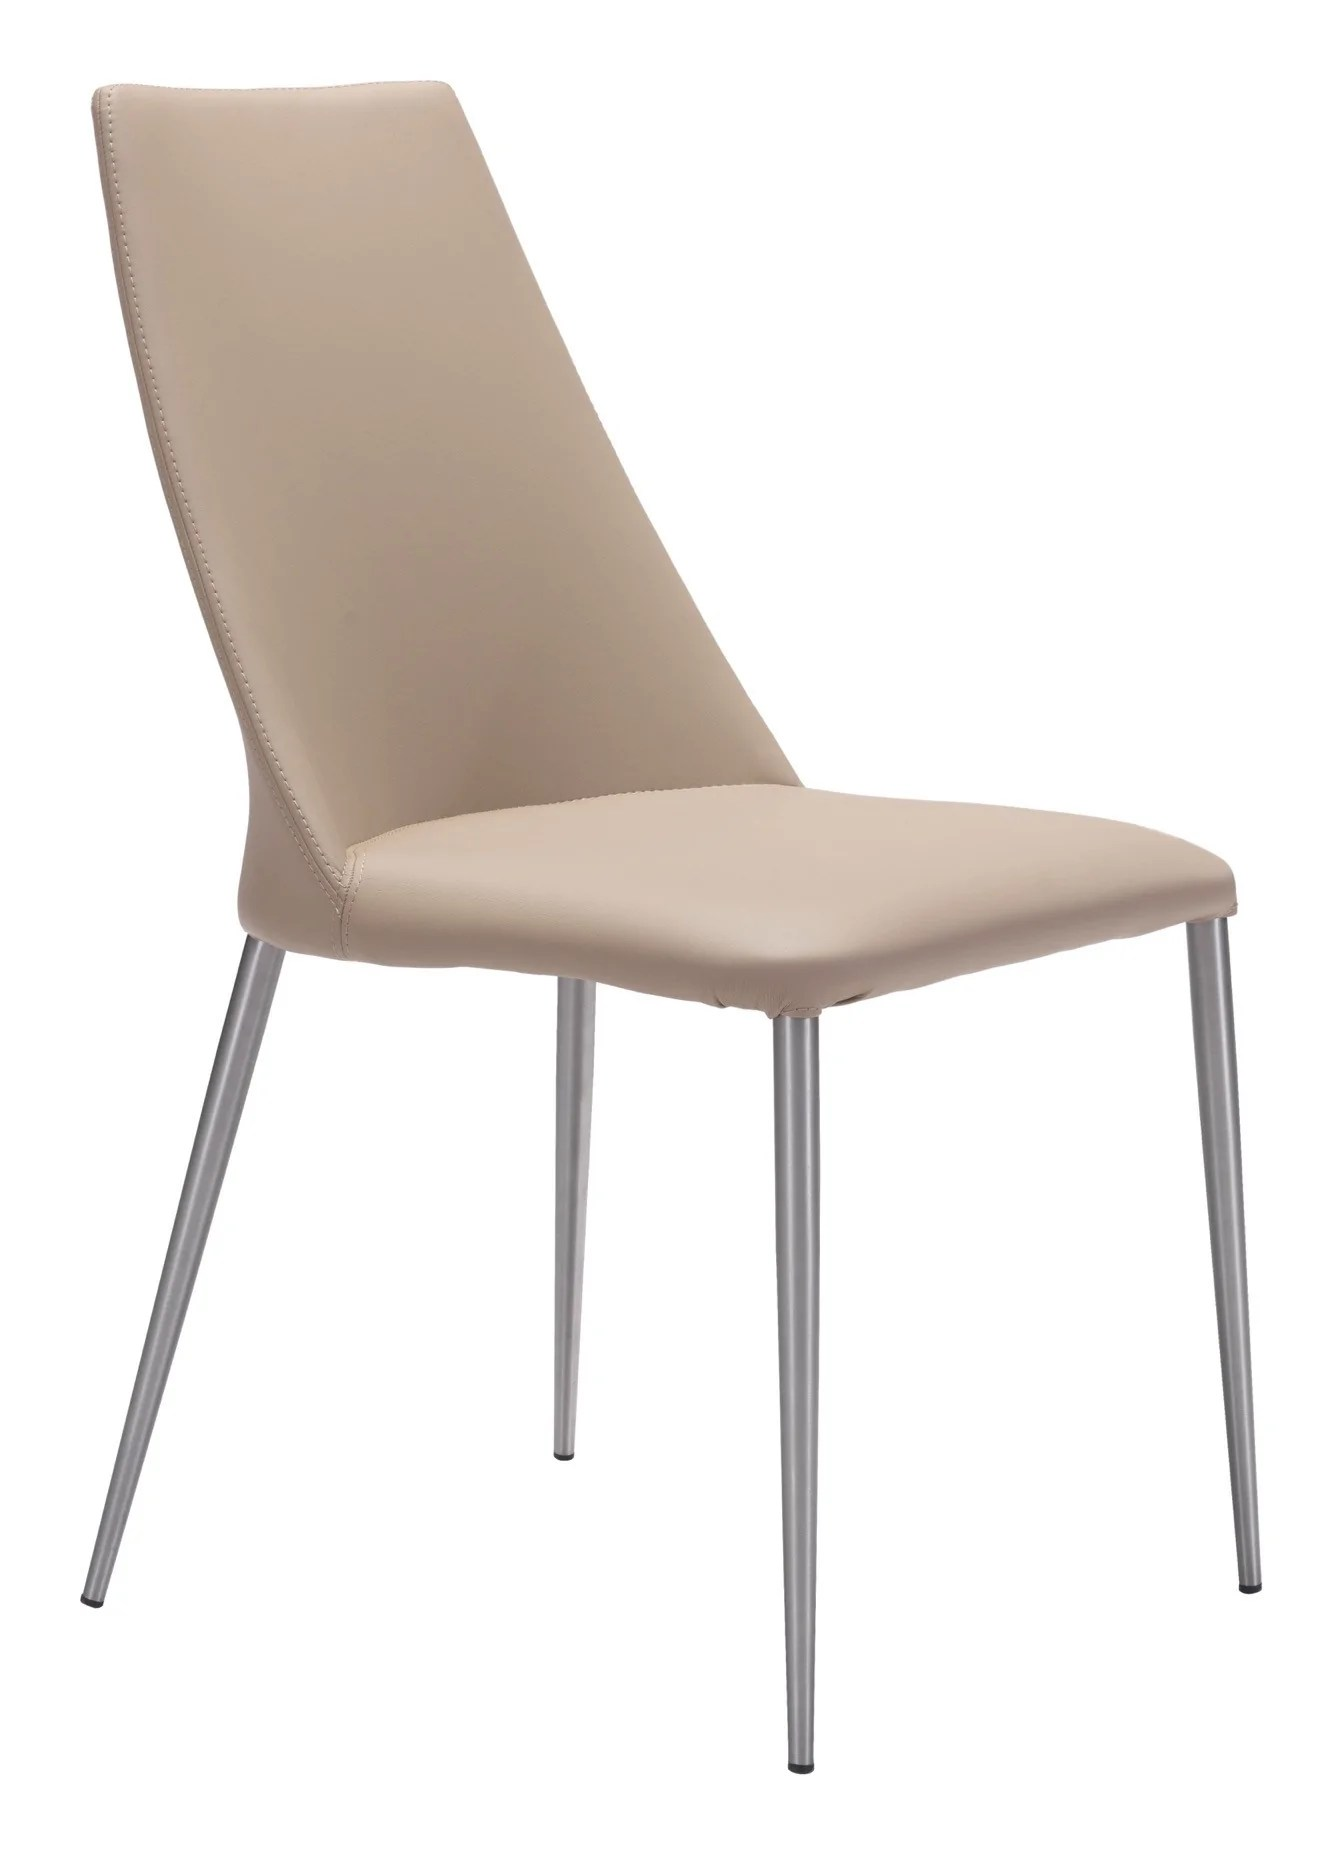 dining chairs with stainless steel legs electric chair heater whisp in beige leatherette on brushed leg set of 2